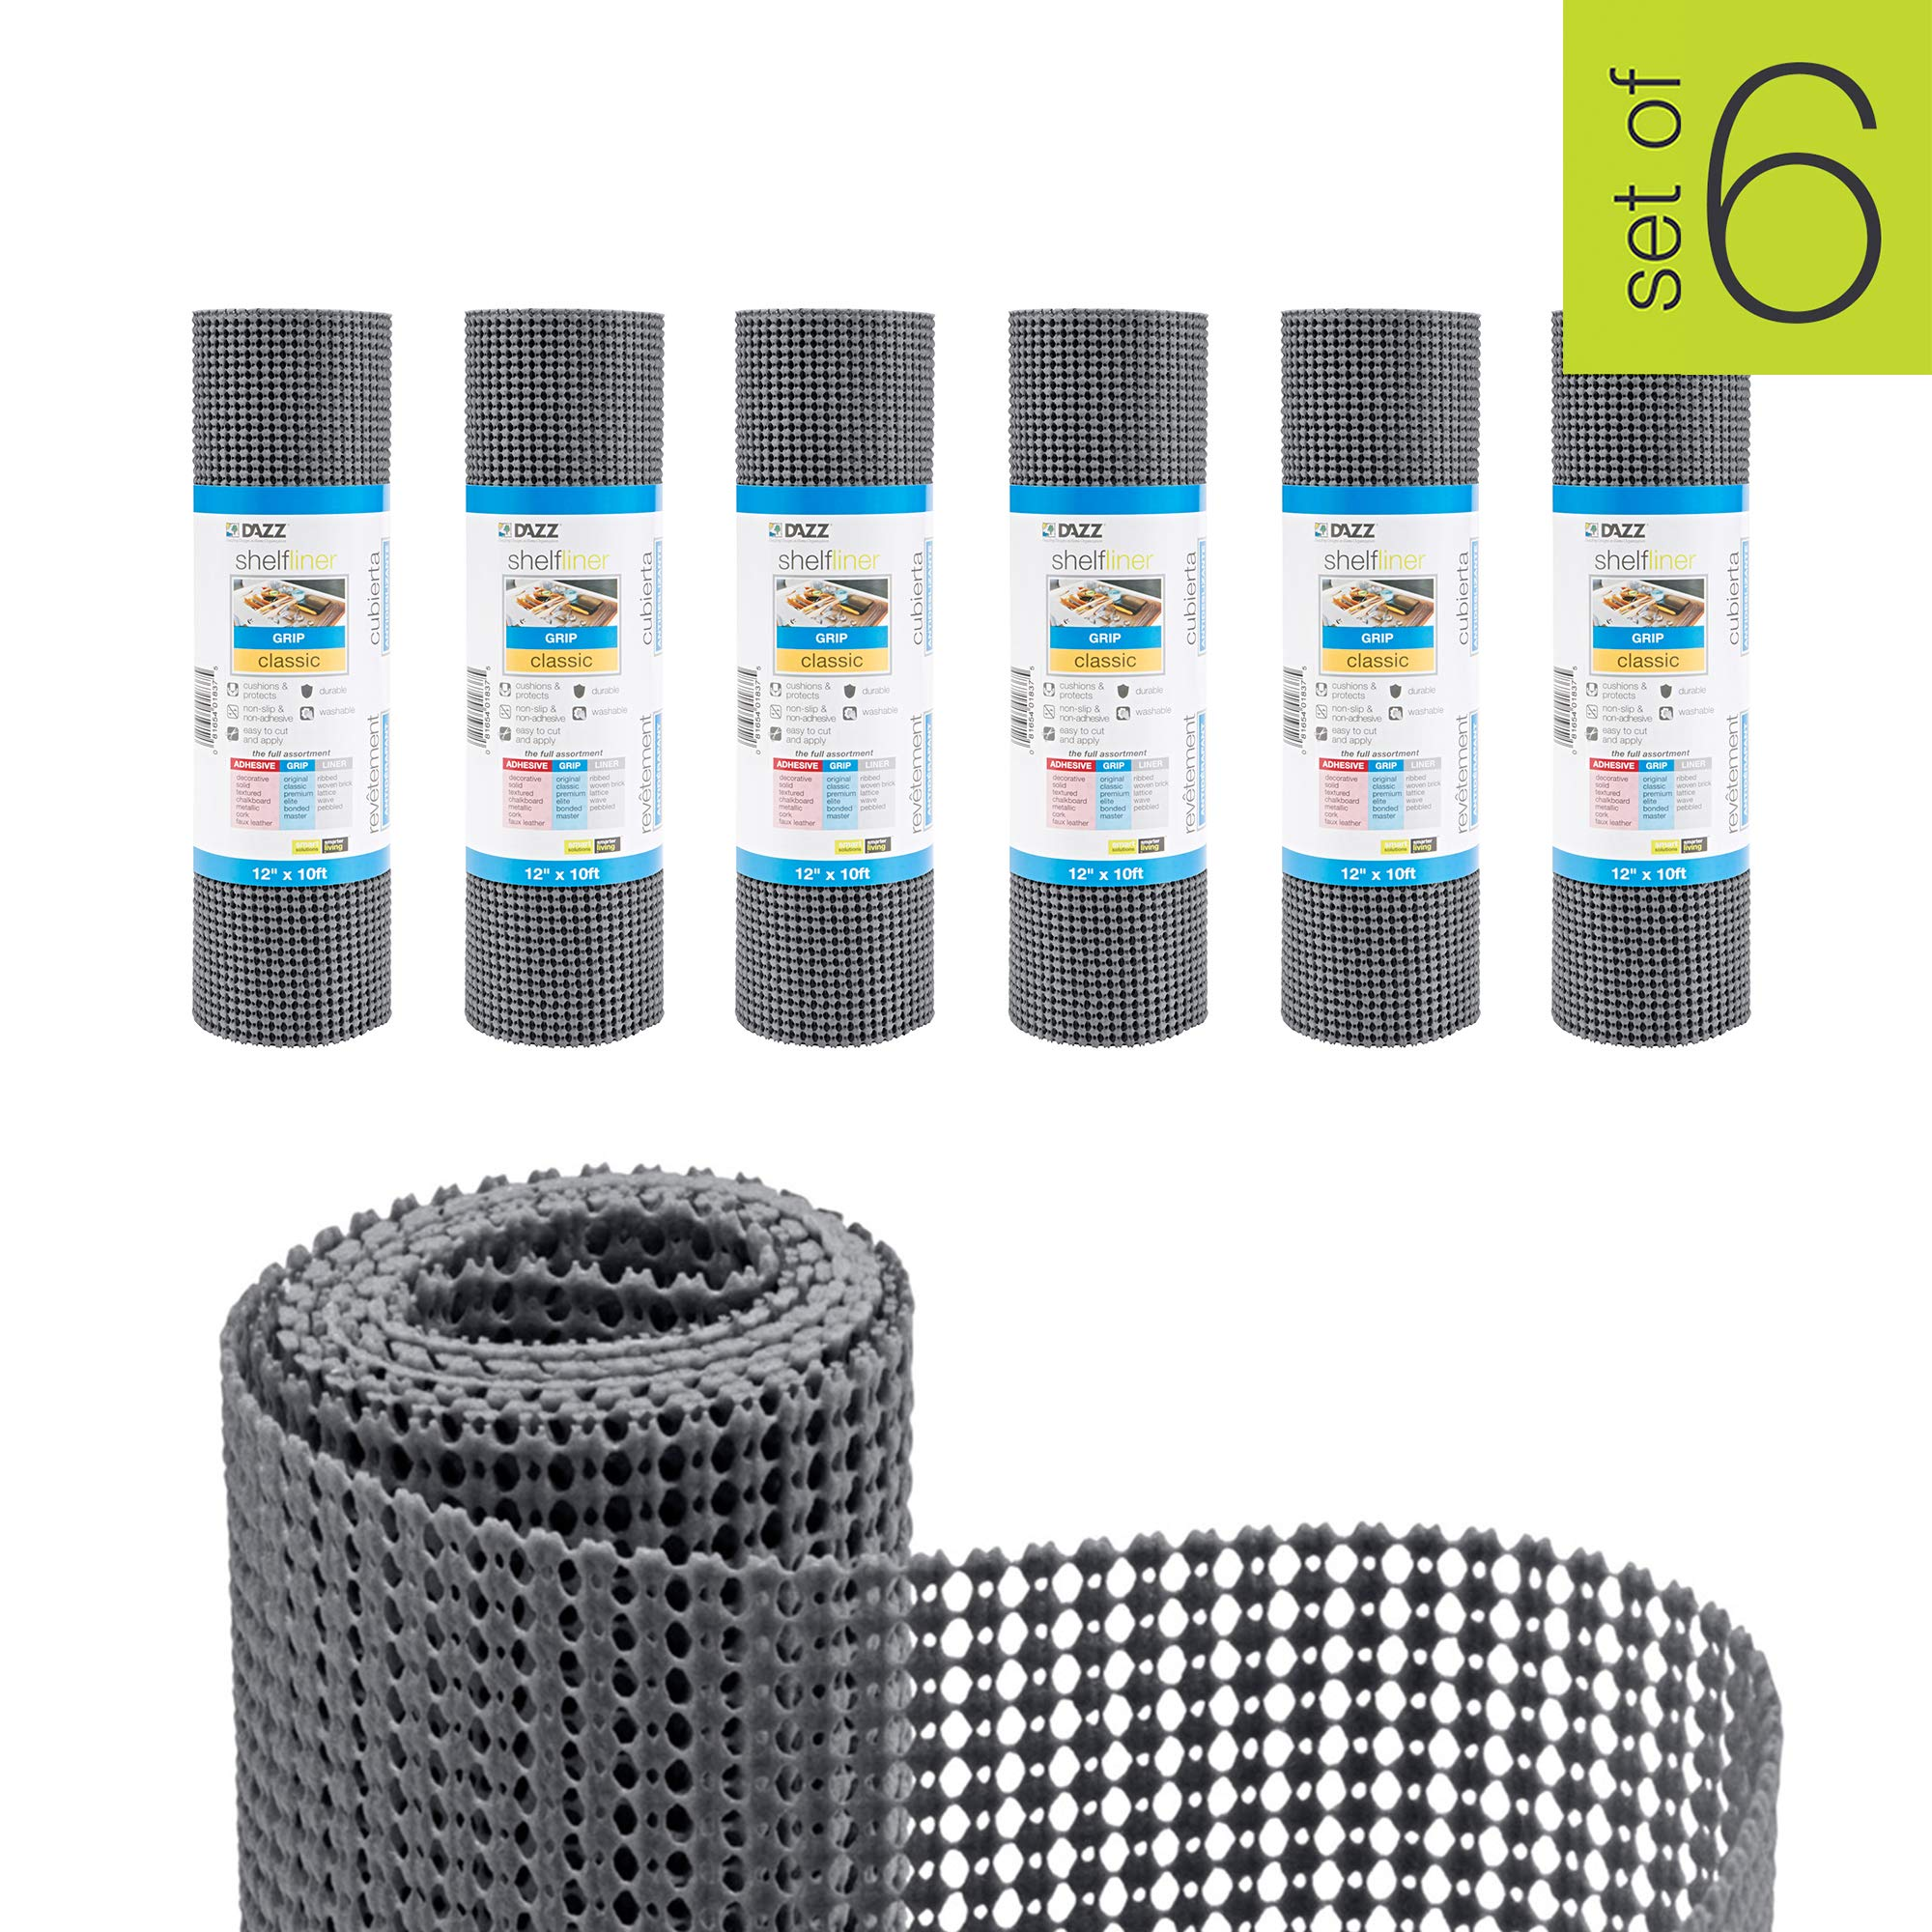 Smart Design Shelf Liner w/Classic Grip - Wipes Clean - Cutable Material - Non Slip Design - for Shelves, Drawers, Flat Surfaces - Kitchen (12 Inch x 10 Feet) [Graphite Gray] - Set of 6-60' Total by Smart Design